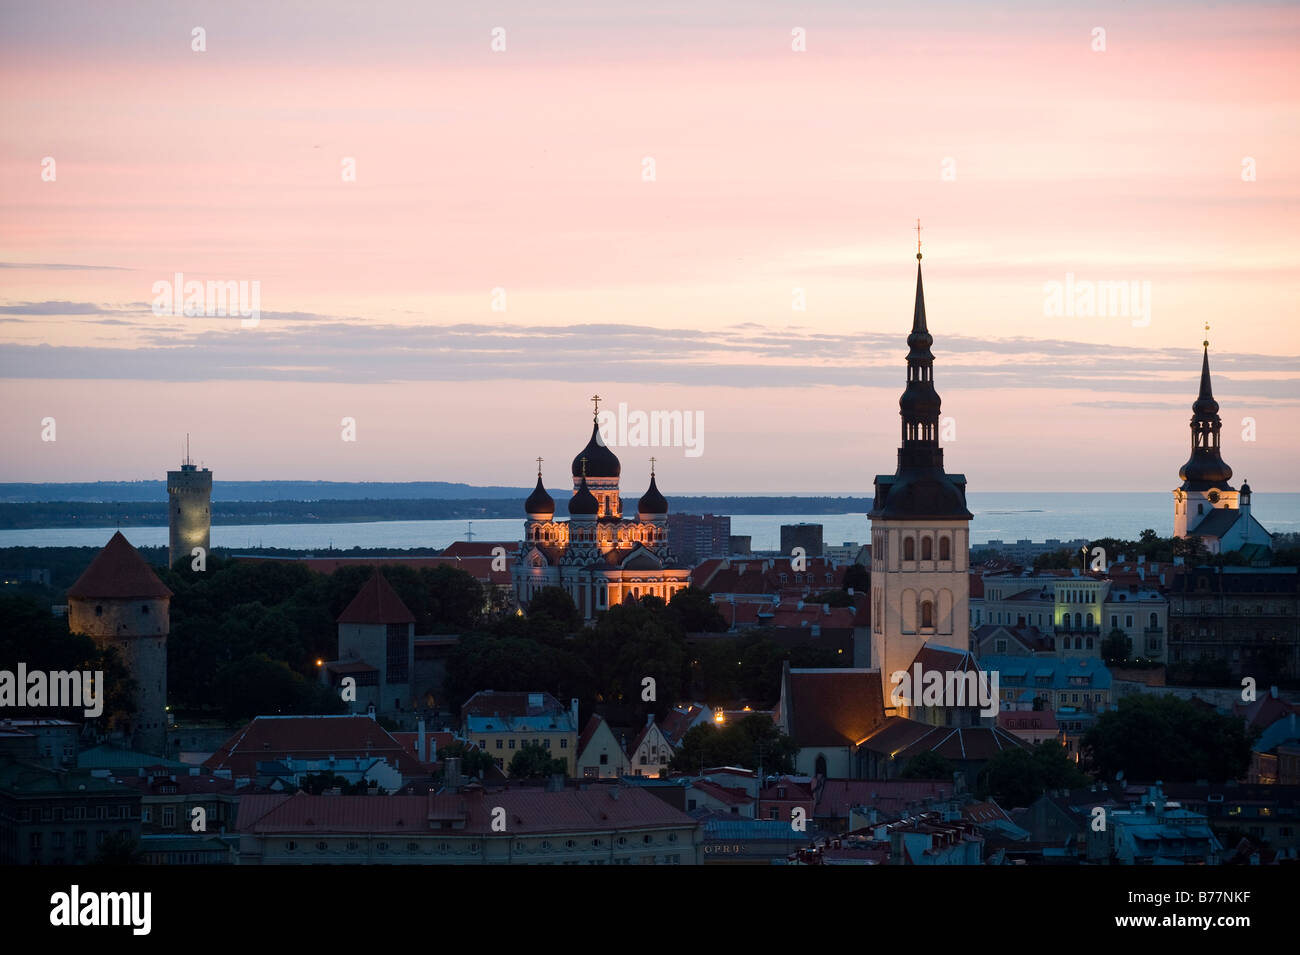 View from SAS Radisson hotel over the historic town centre of Tallinn, Estonia, Baltic States, Northeastern Europe - Stock Image